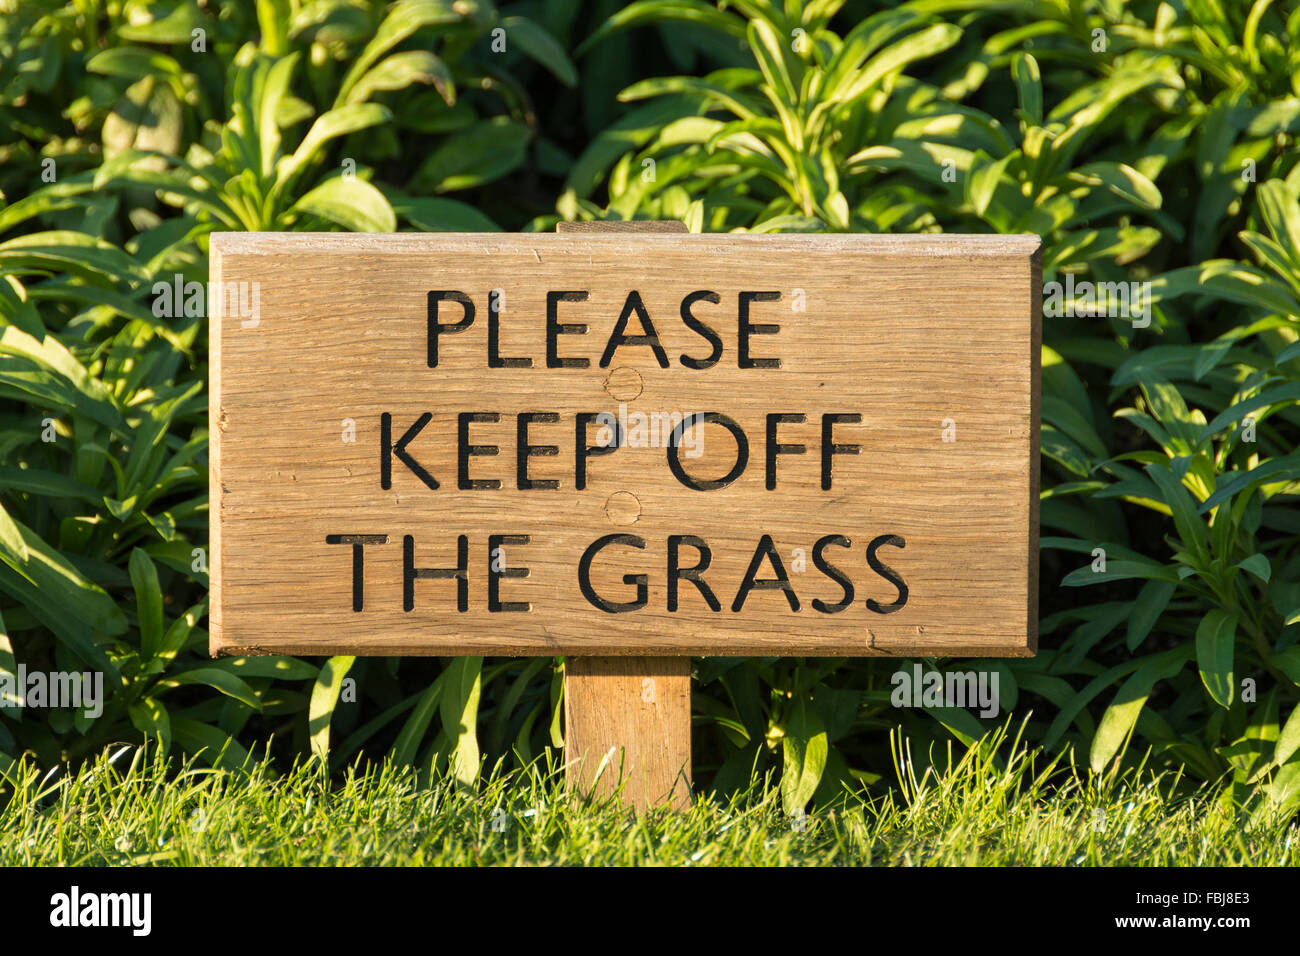 Please keep off the grass sign - Stock Image